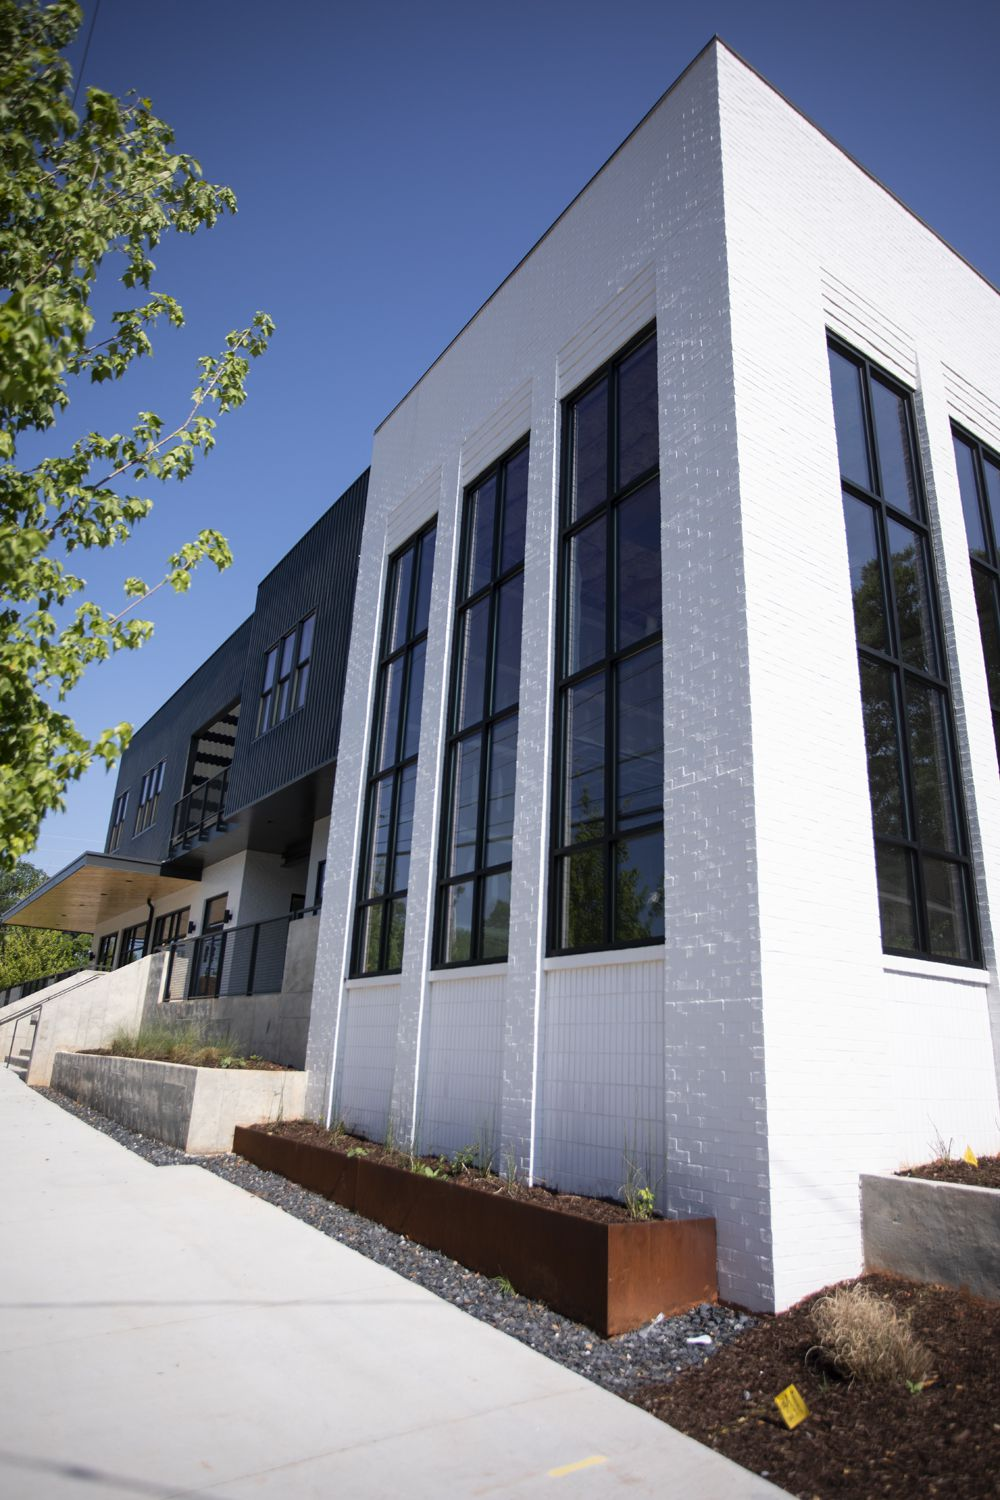 Another view of the office and retail building, featuring white brick and tall windows.